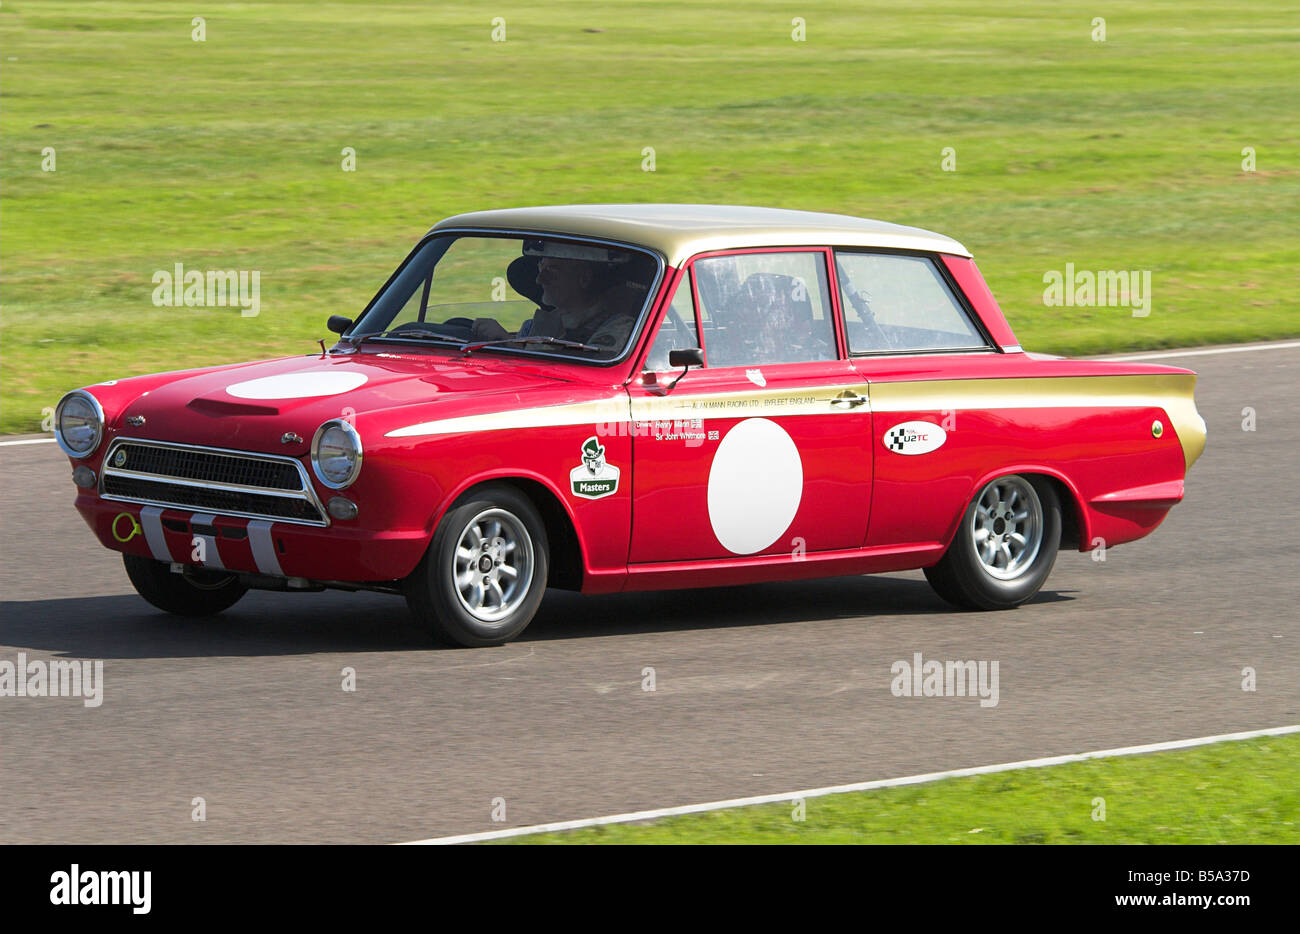 1965 ford lotus cortina mk1 in the racing at goodwood revival stock image